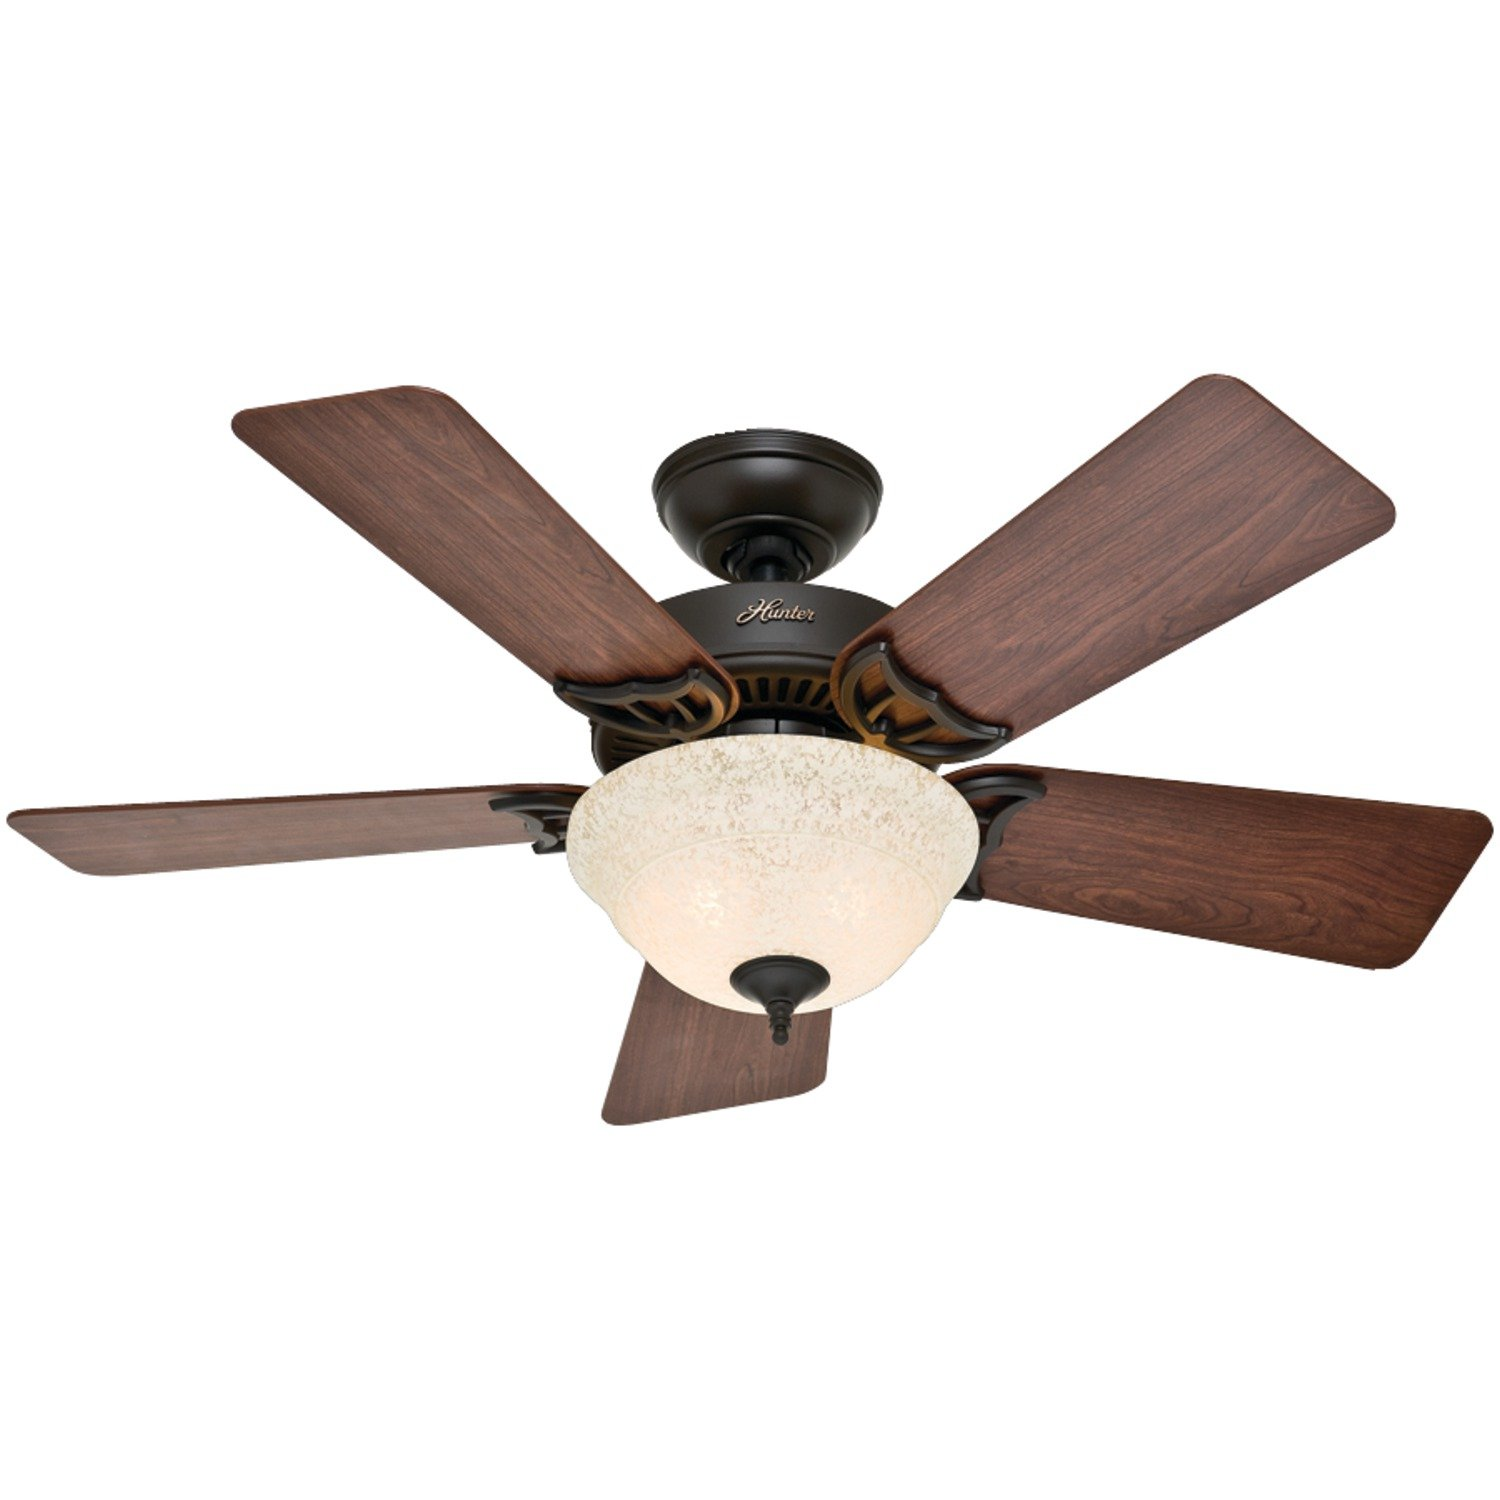 Hunter Kensington Ceiling Fan Kit 51014, 42-Inch, New Bronze